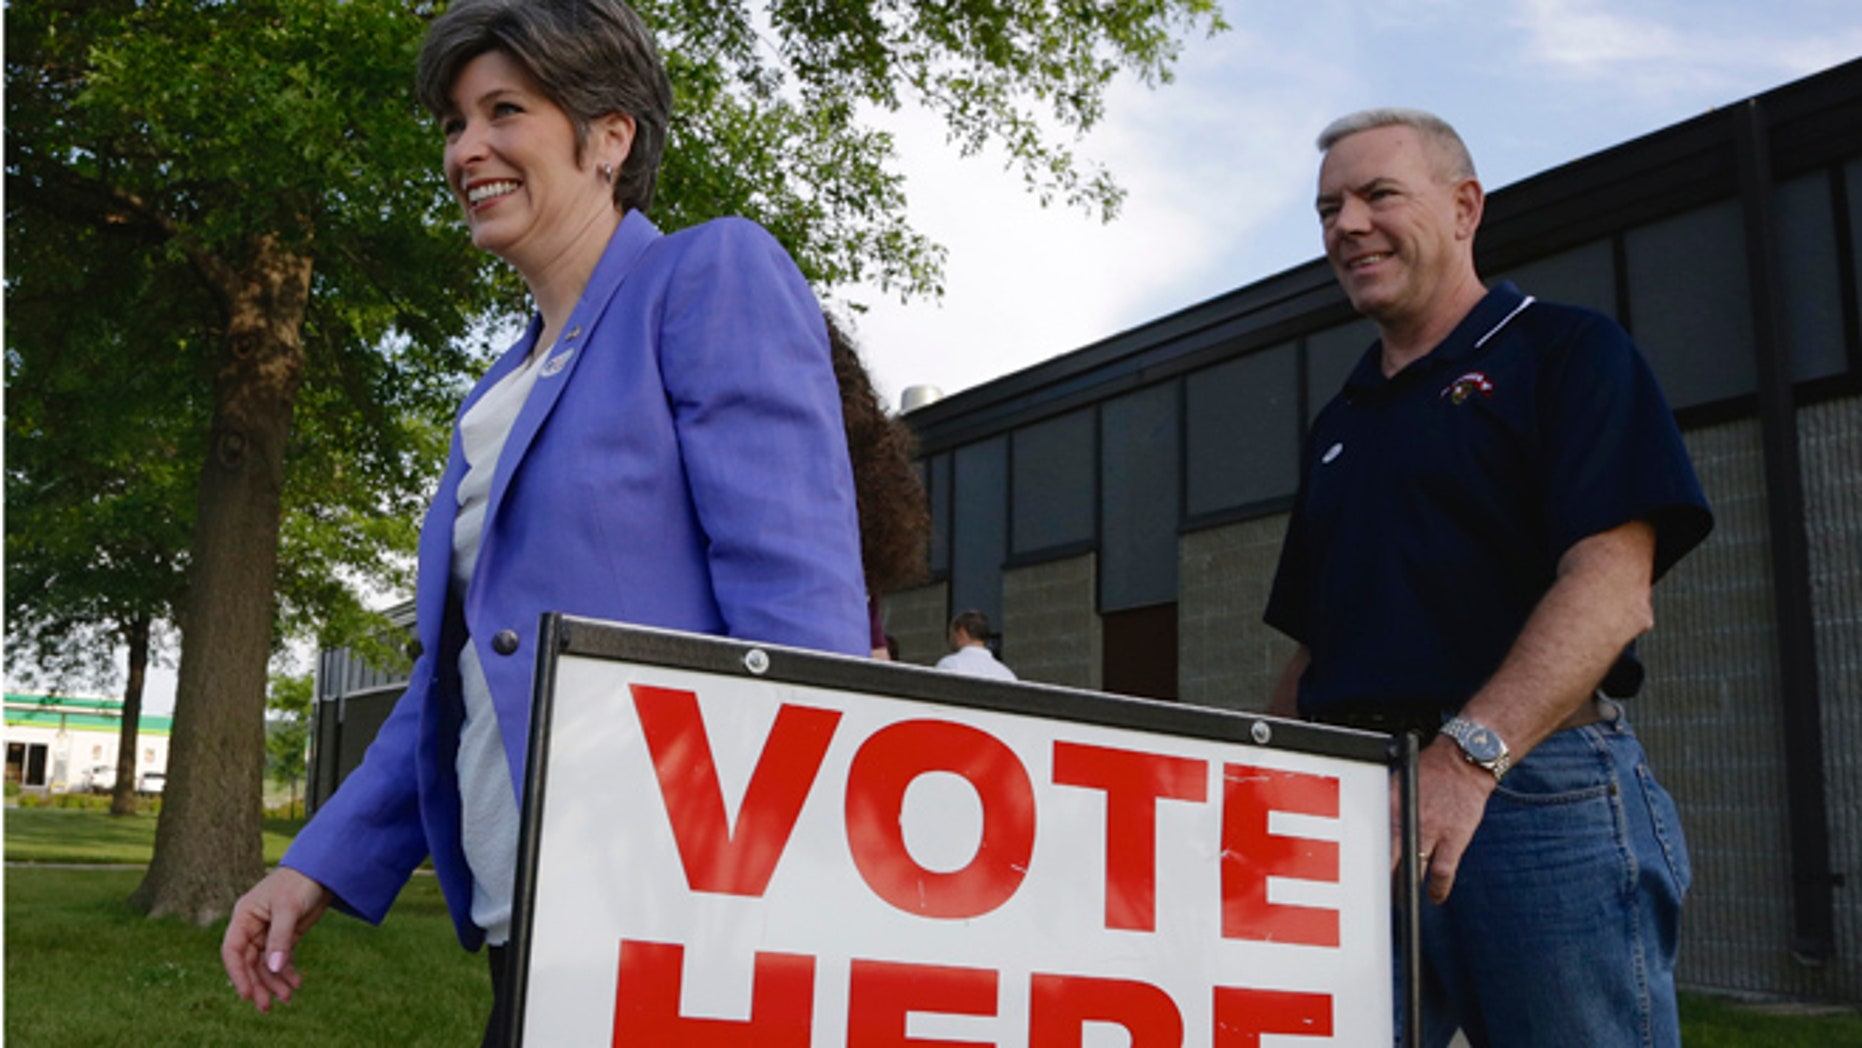 June 3, 2014: GOP Senate candidate Joni Ernst and husband Gail, right, leave a polling station in Red Oak, Iowa.